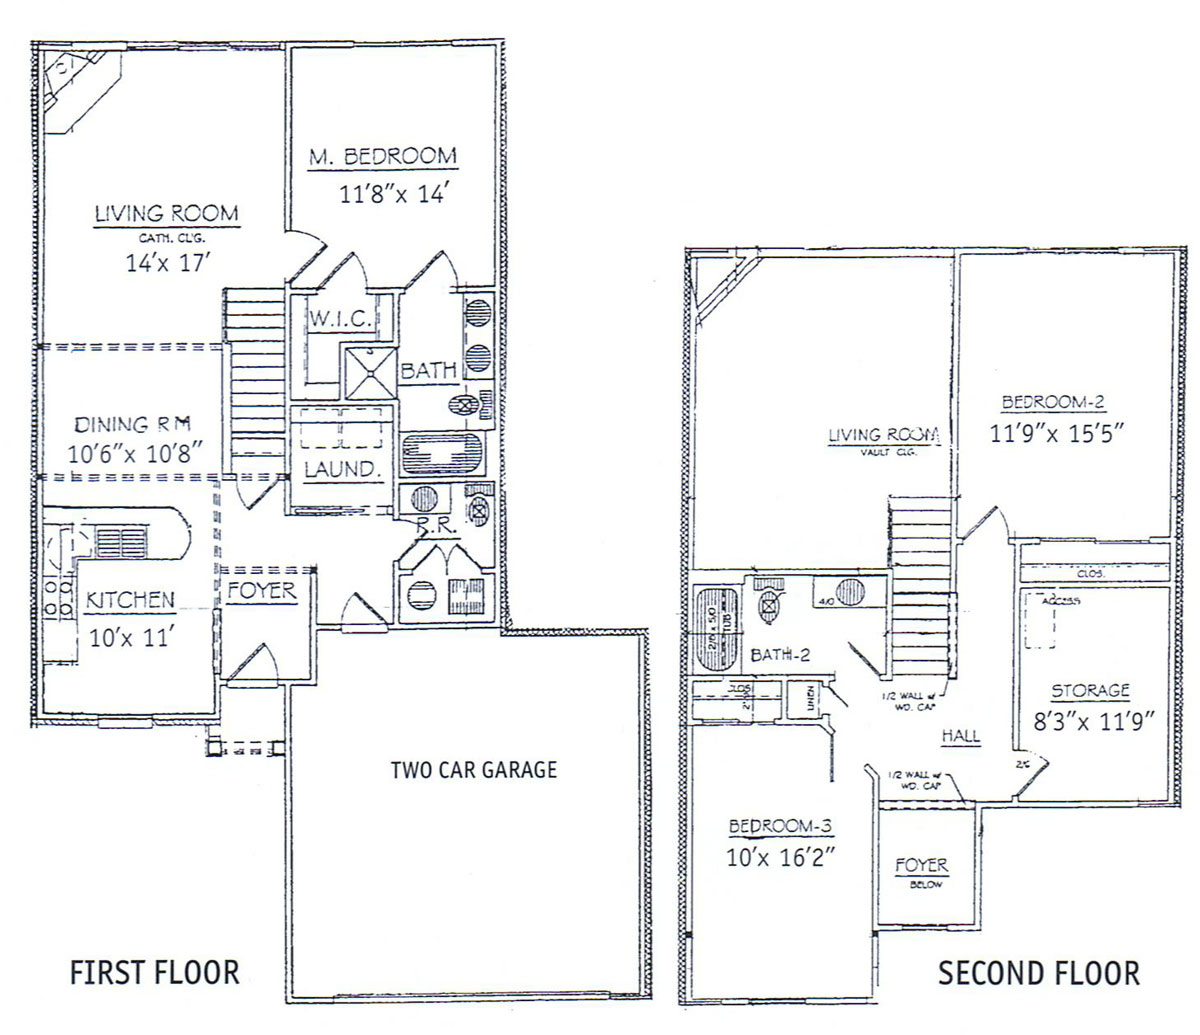 Single Wide Trailer Home Floor Plans additionally Best Image Of 4 Bedroom Double Wide as well 2 Bedroom Mobile Homes also 27 Pictures Park Model Home Plans also 167688786098021961. on double wide mobile homes for rent